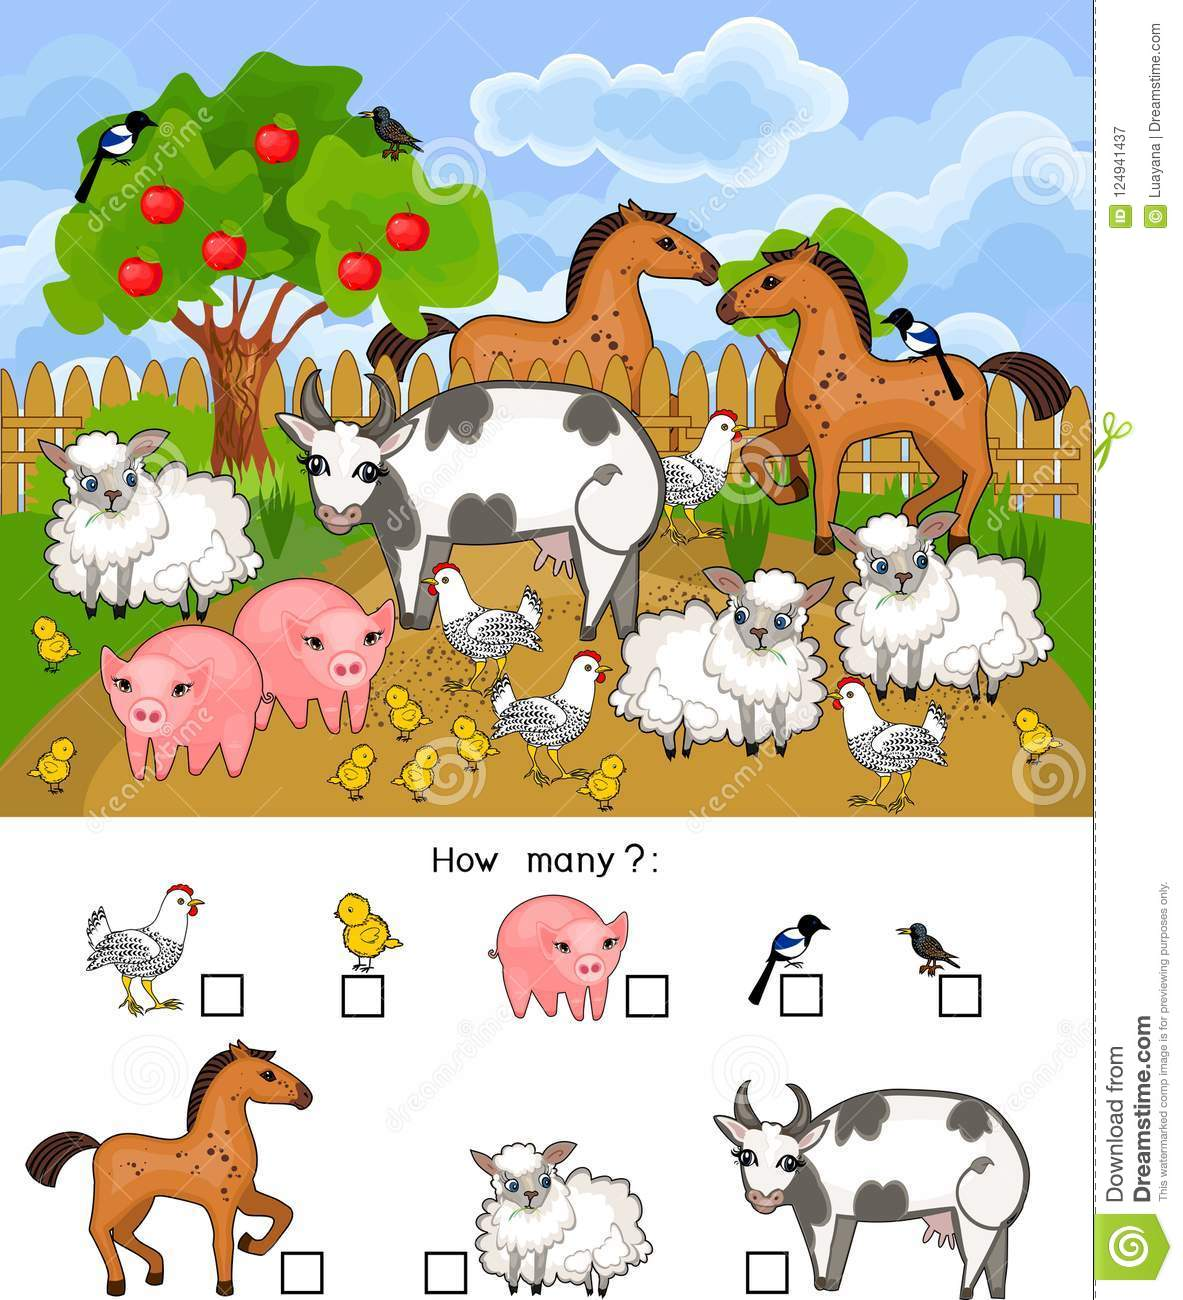 How Many Animals Counting Educational Game With Different Farm Animals For Preschool Kids Stock